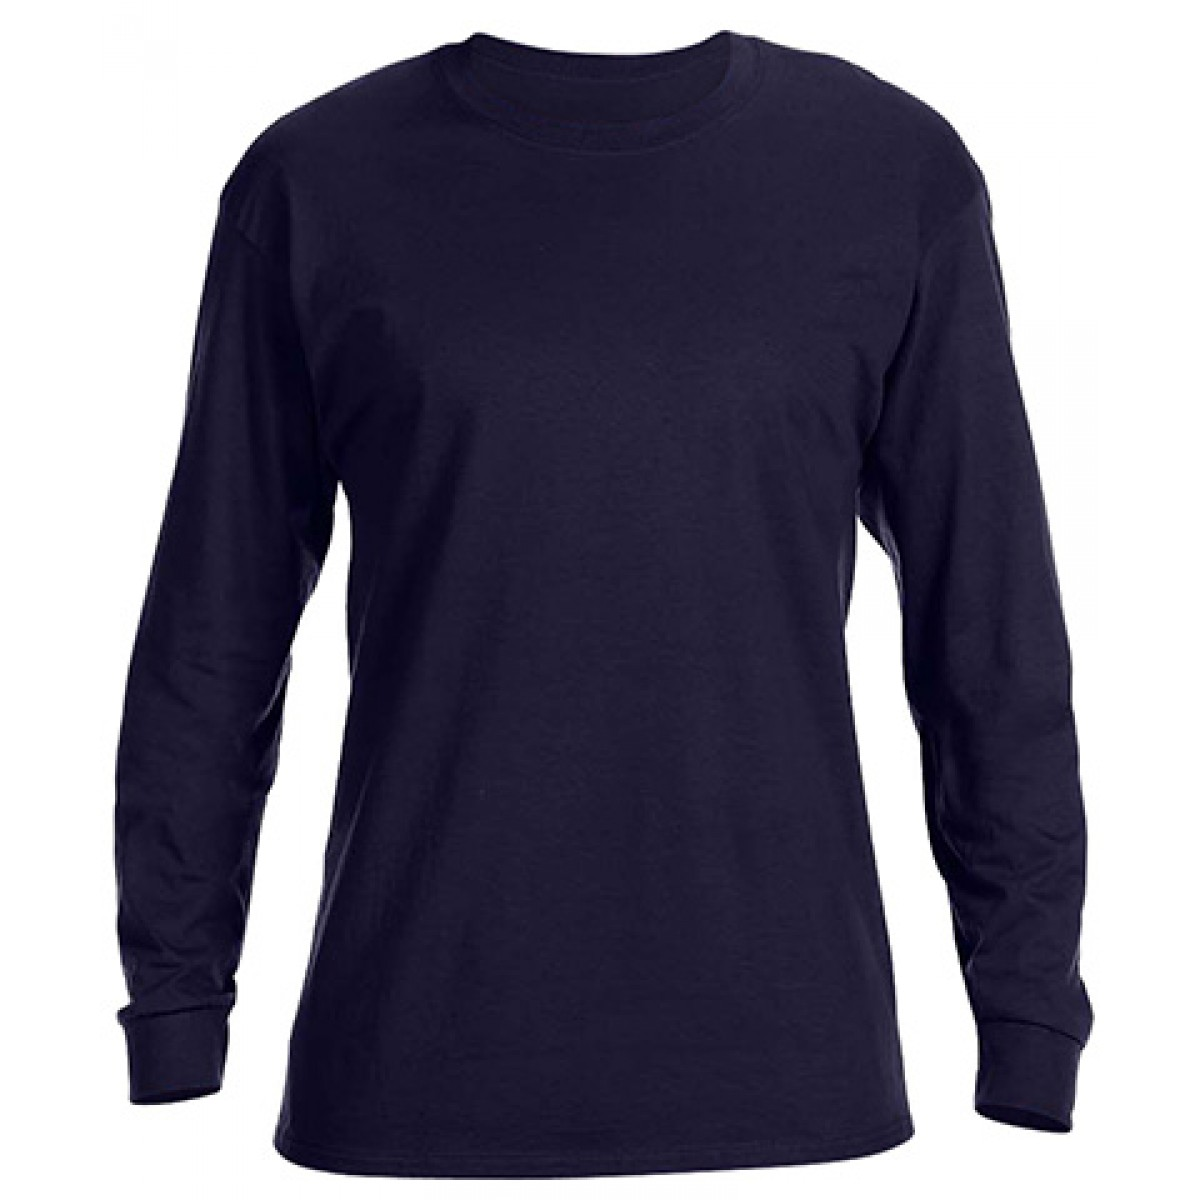 Basic Long Sleeve Crew Neck -Navy-M